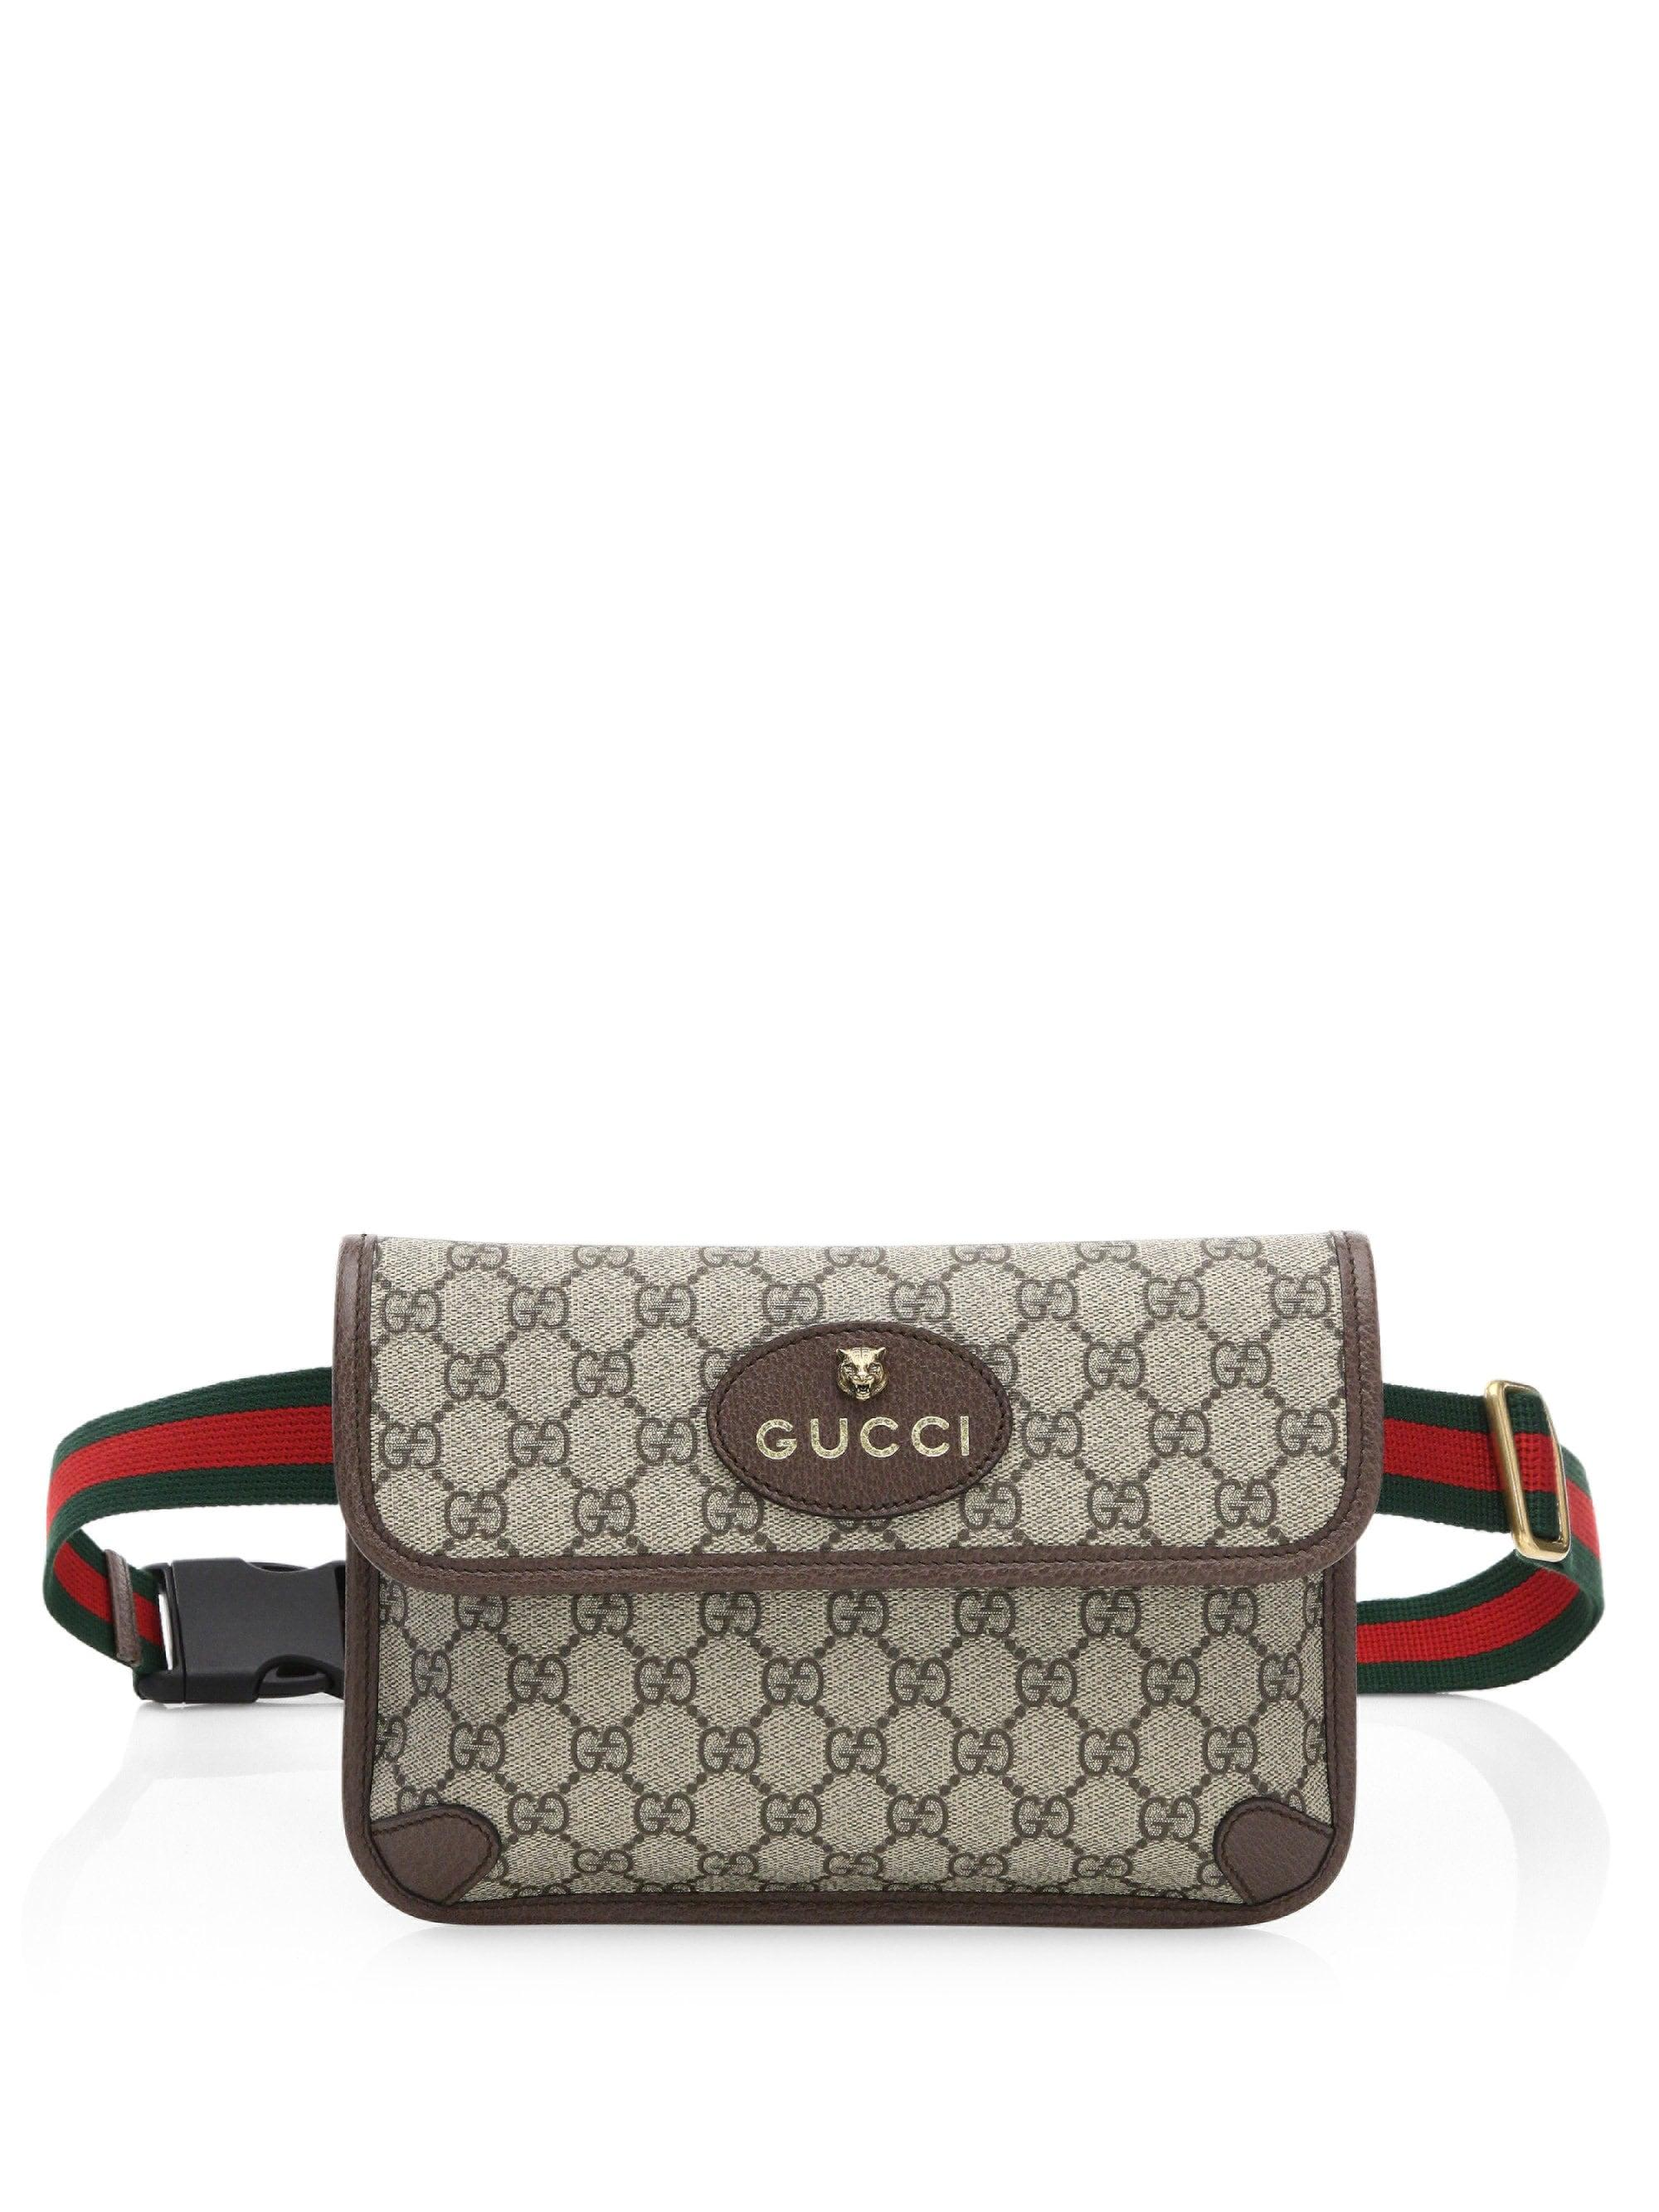 c5b2e97a2382cd Gucci Neo Vintage Canvas Belt Bag in Natural - Lyst